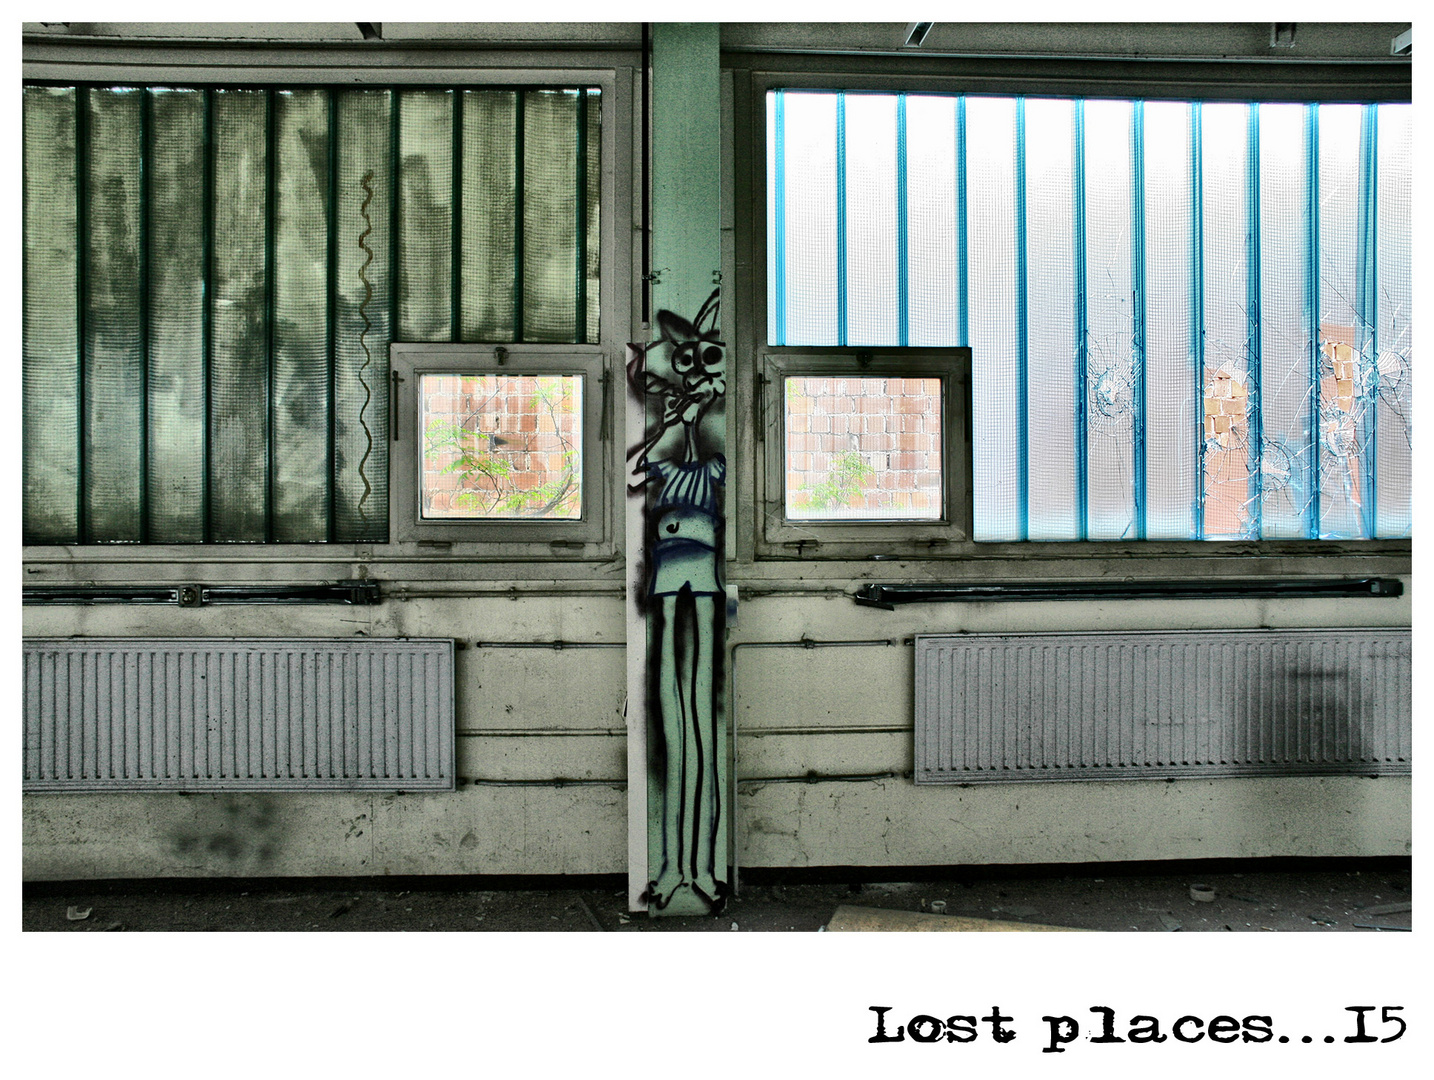 Lost places...15